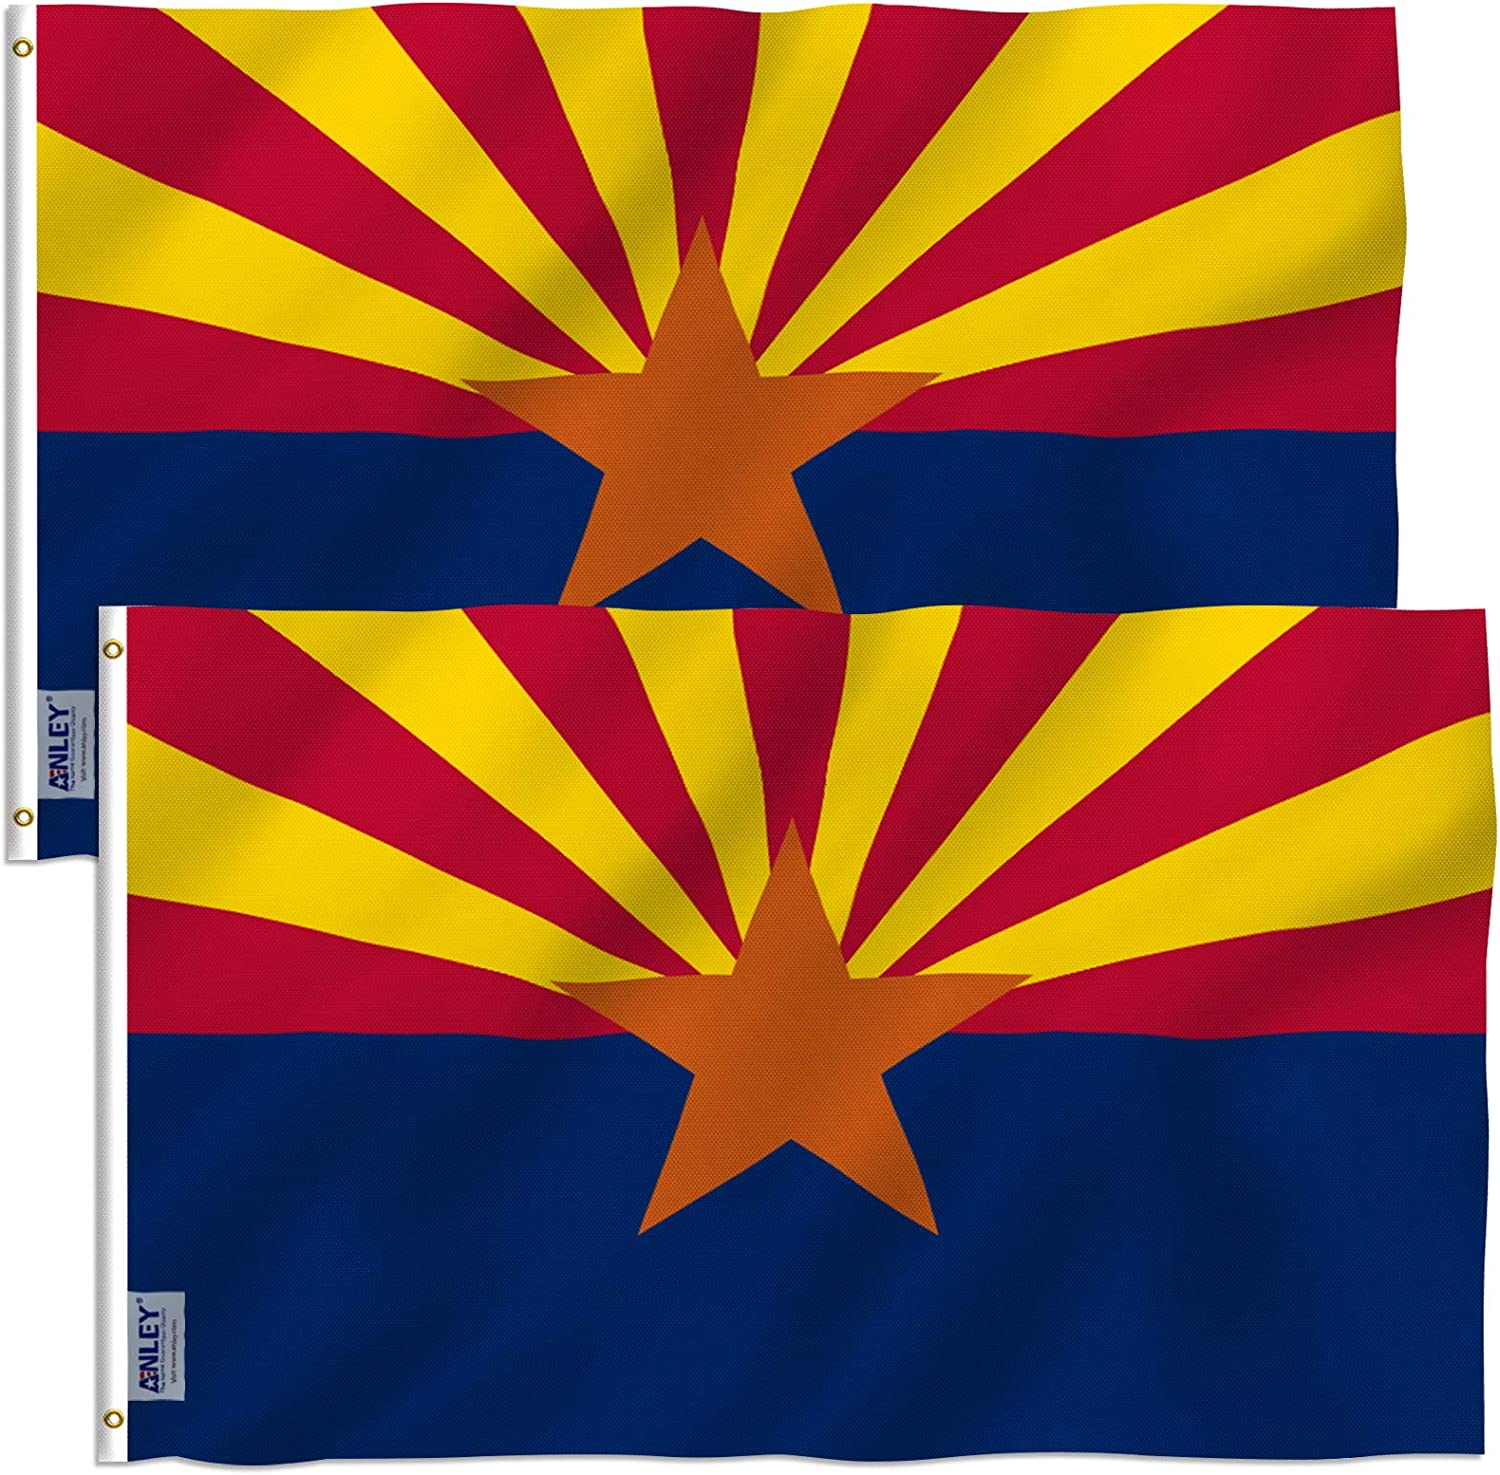 Anley Pack Bombing new work of 2 Fly Breeze State Polyester Arizona Quantity limited 3x5 Foot Flag